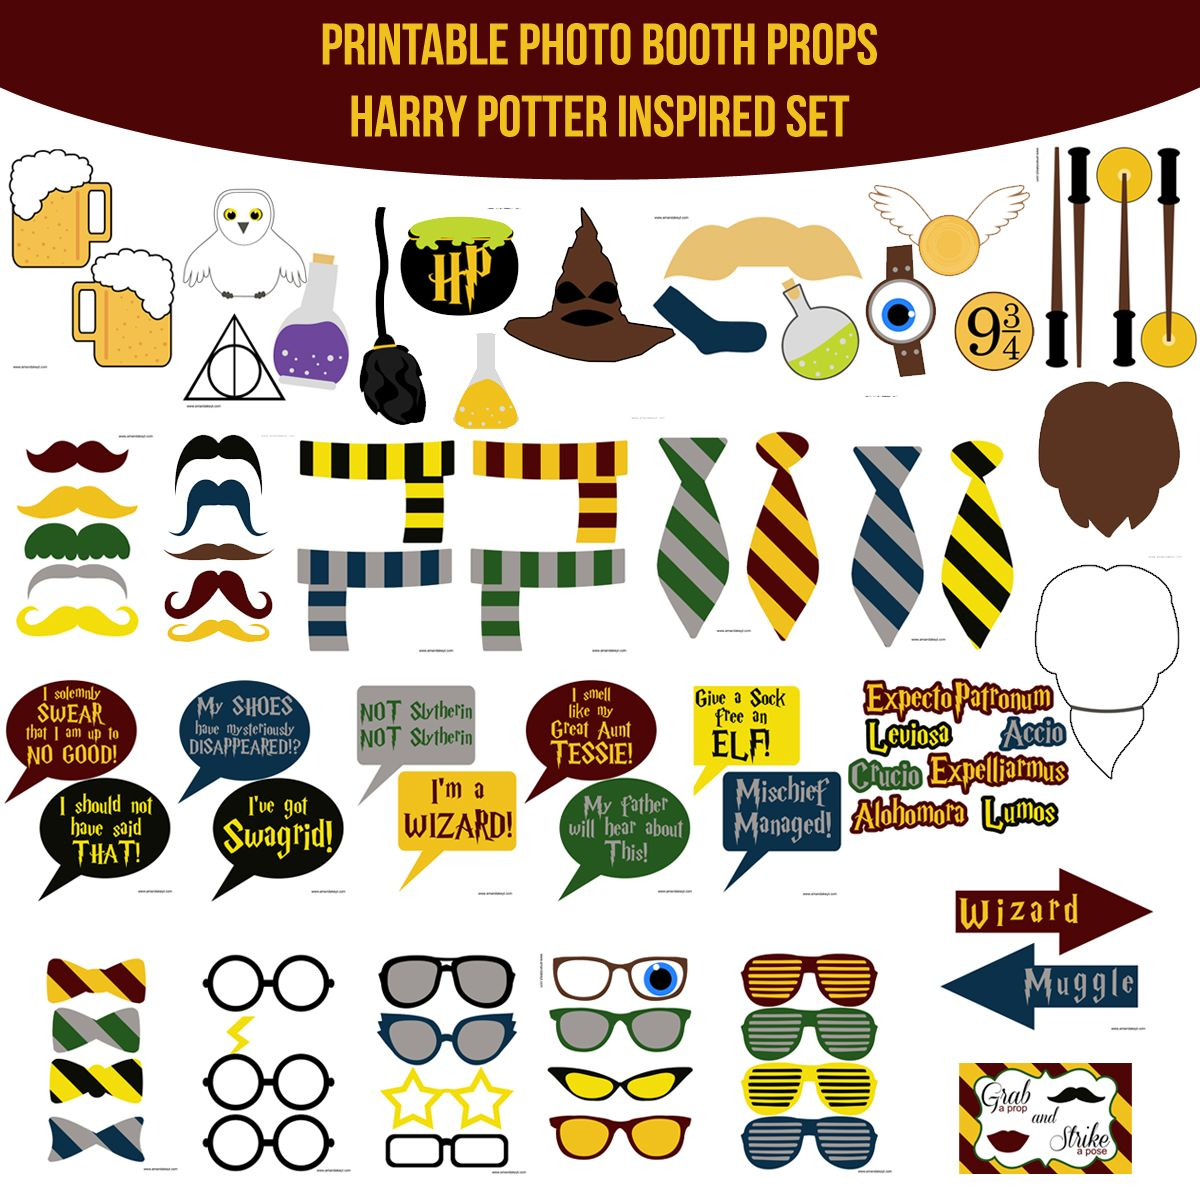 Striking image with regard to harry potter printable props